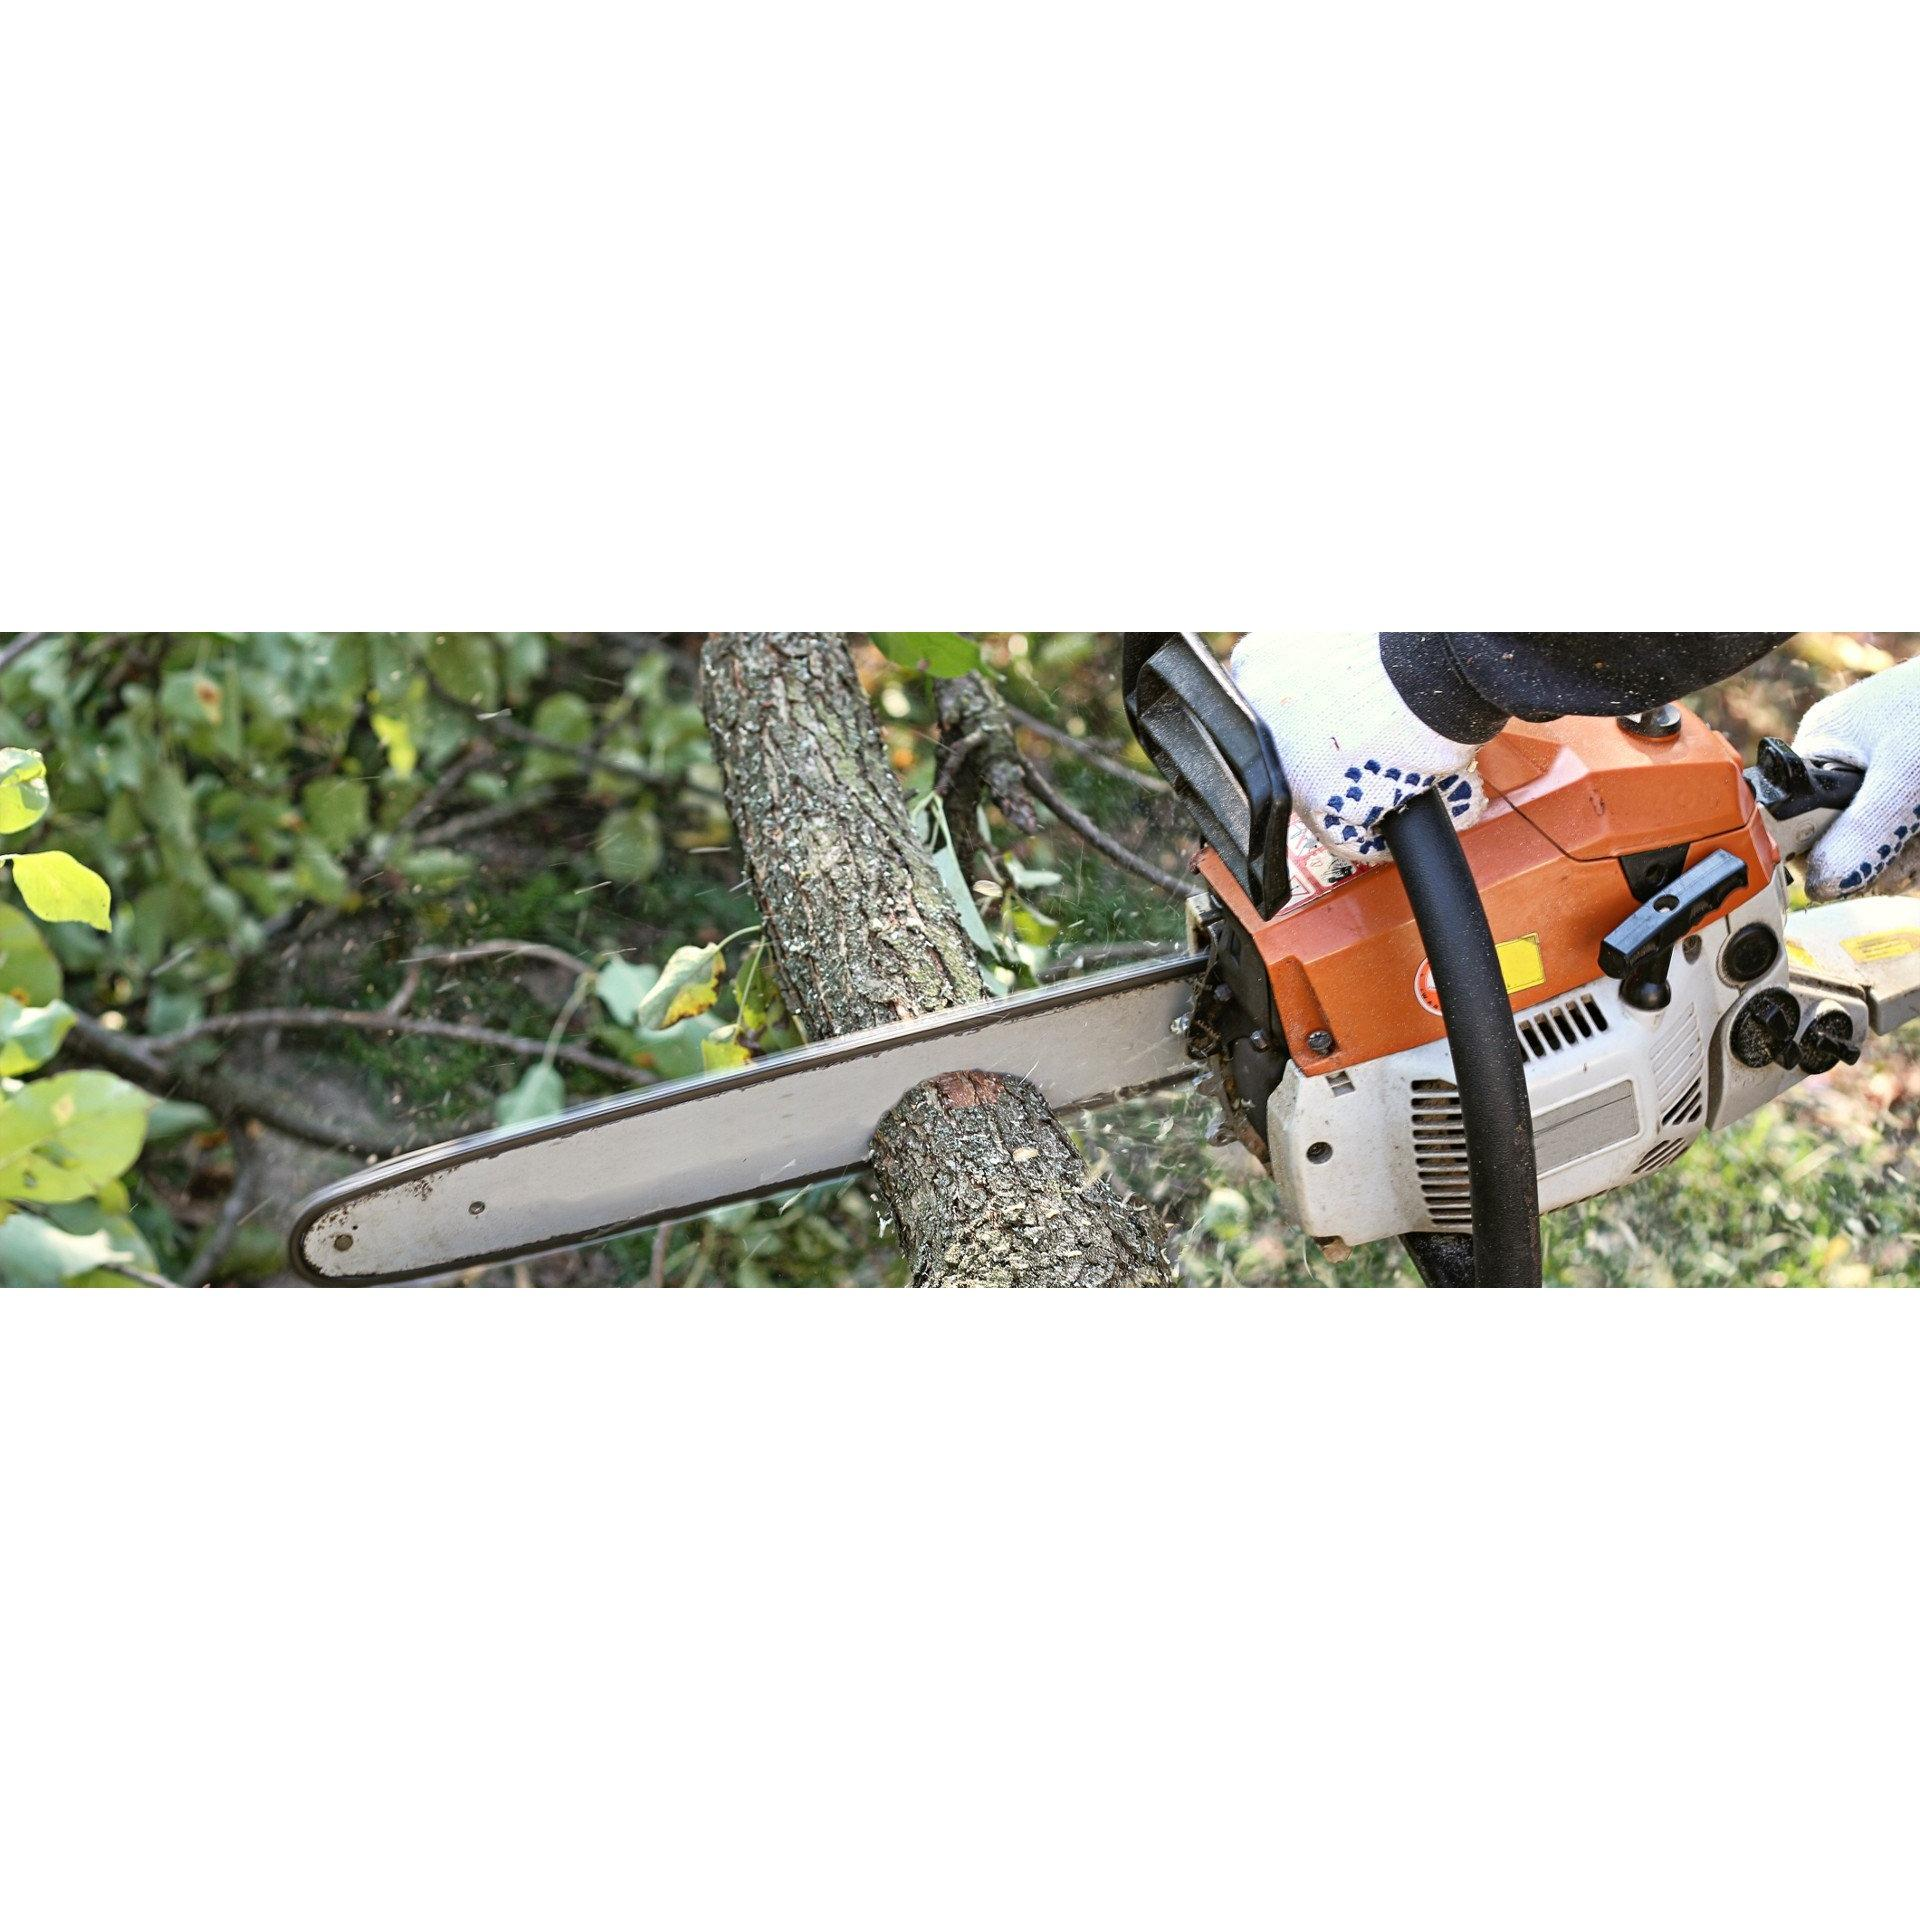 Culley Tree Service